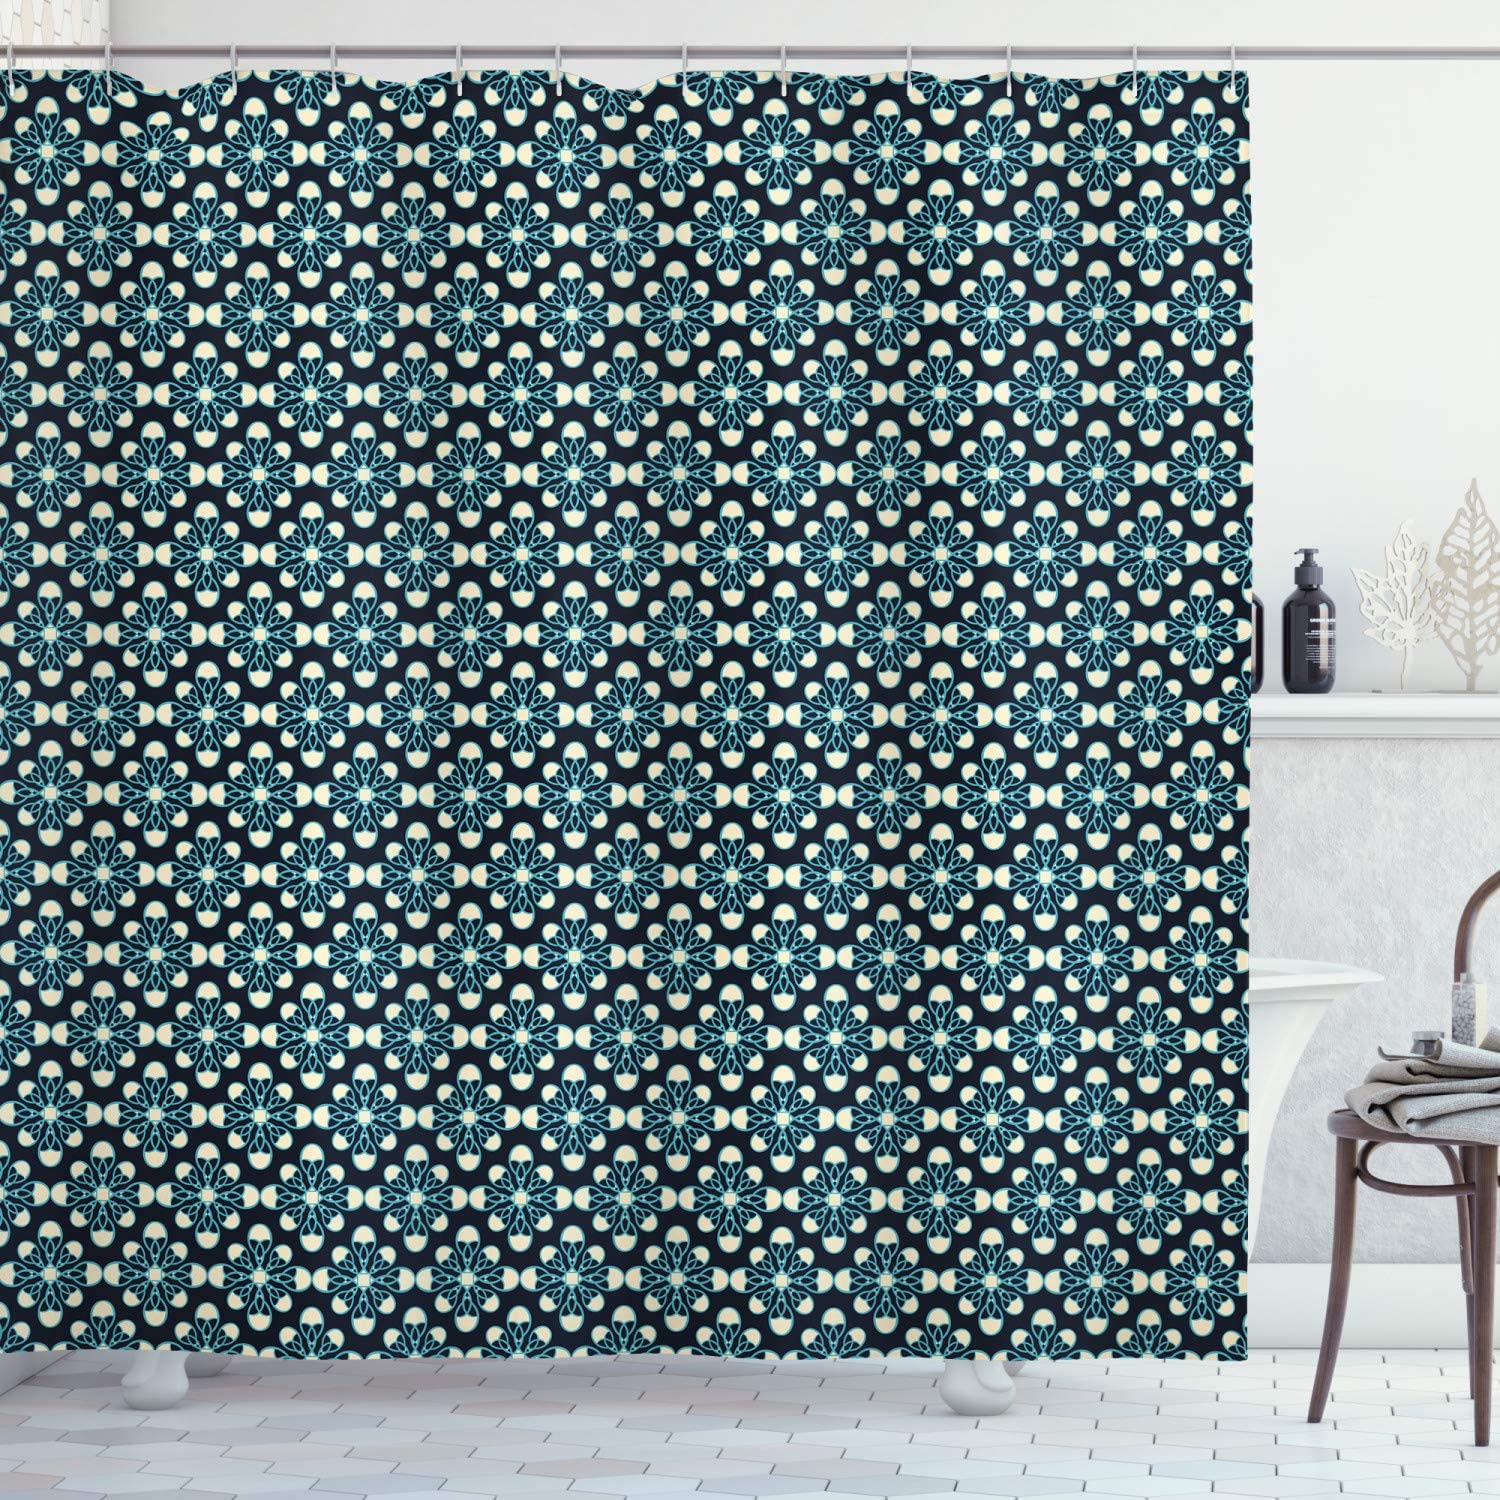 """Ambesonne Geometric Shower Curtain, Floral Pattern Dark Tones Plant Nature Inspired Blossoming Spring Flowers, Cloth Fabric Bathroom Decor Set with Hooks, 75"""" Long, Black Cream"""